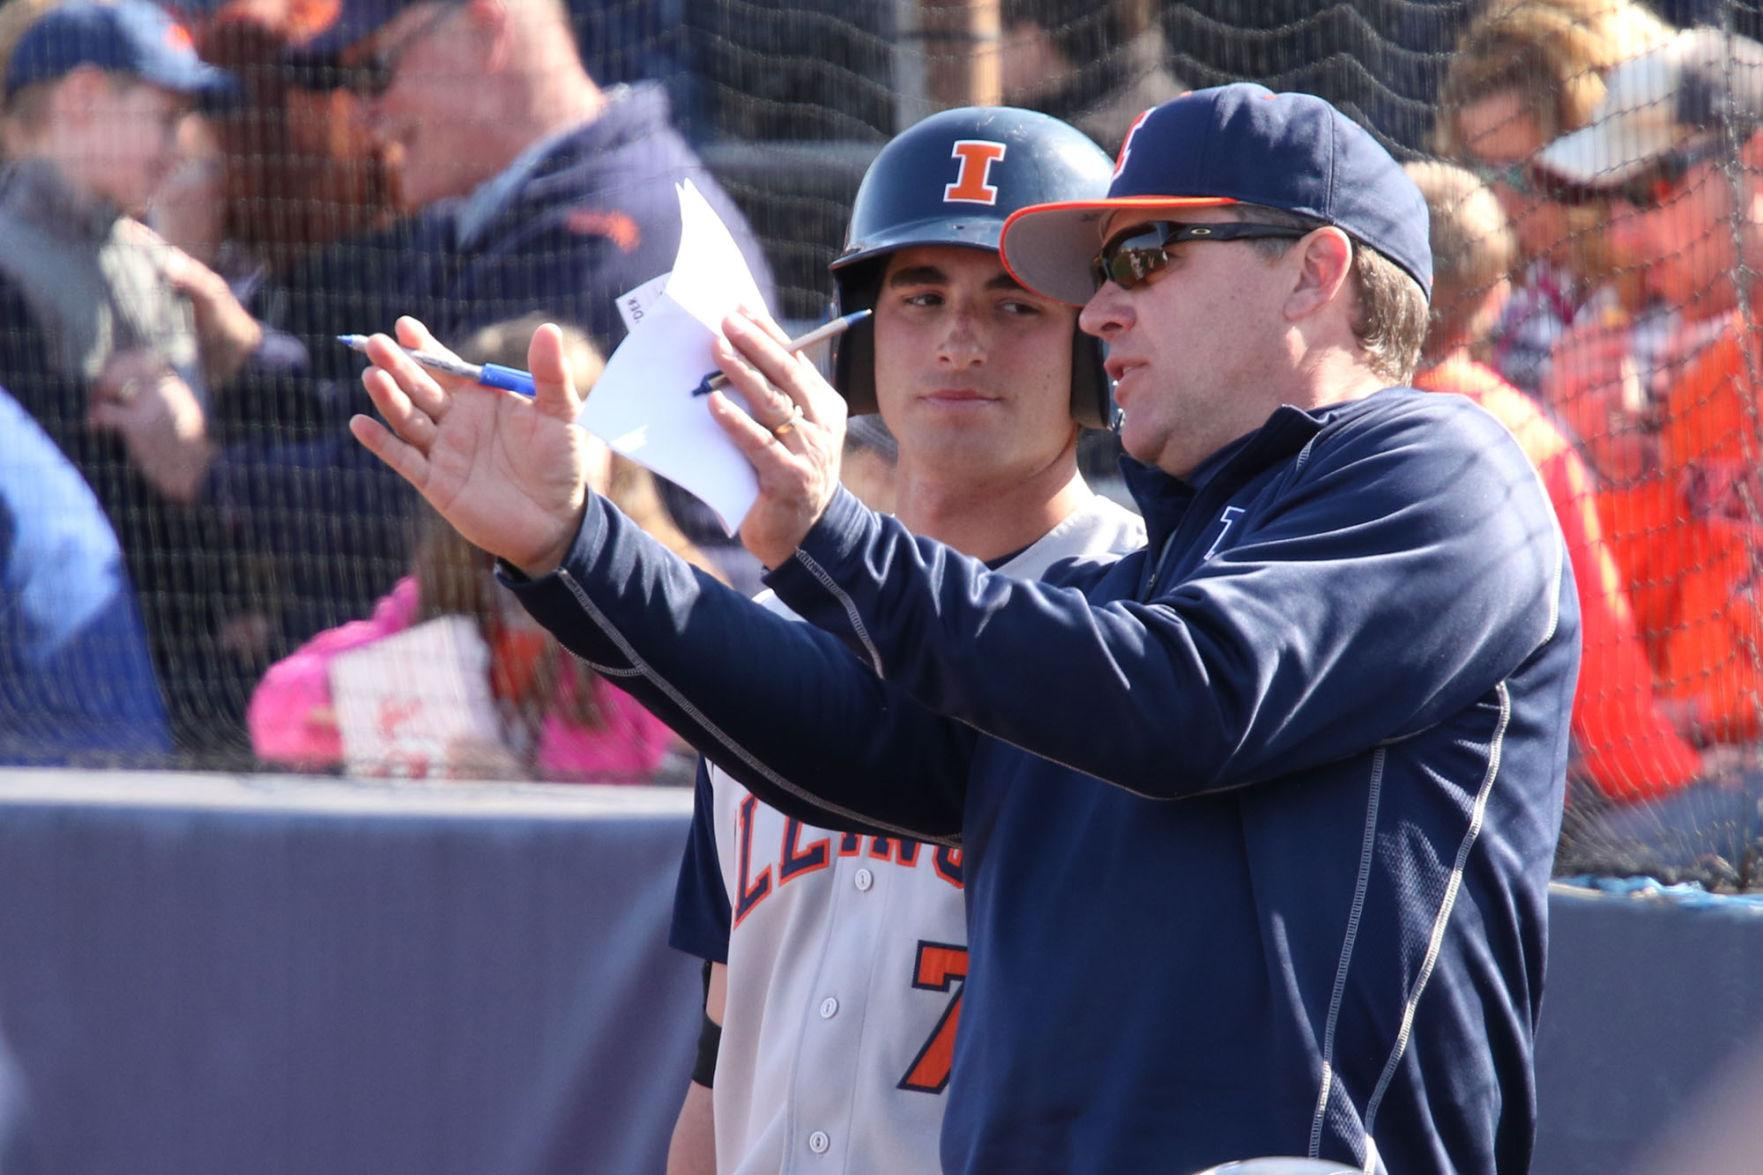 Illinois' head coach Dan Hartleb gives Reid Roper some guidance during the baseball game against Northwestern at Illinois Field on Saturday.